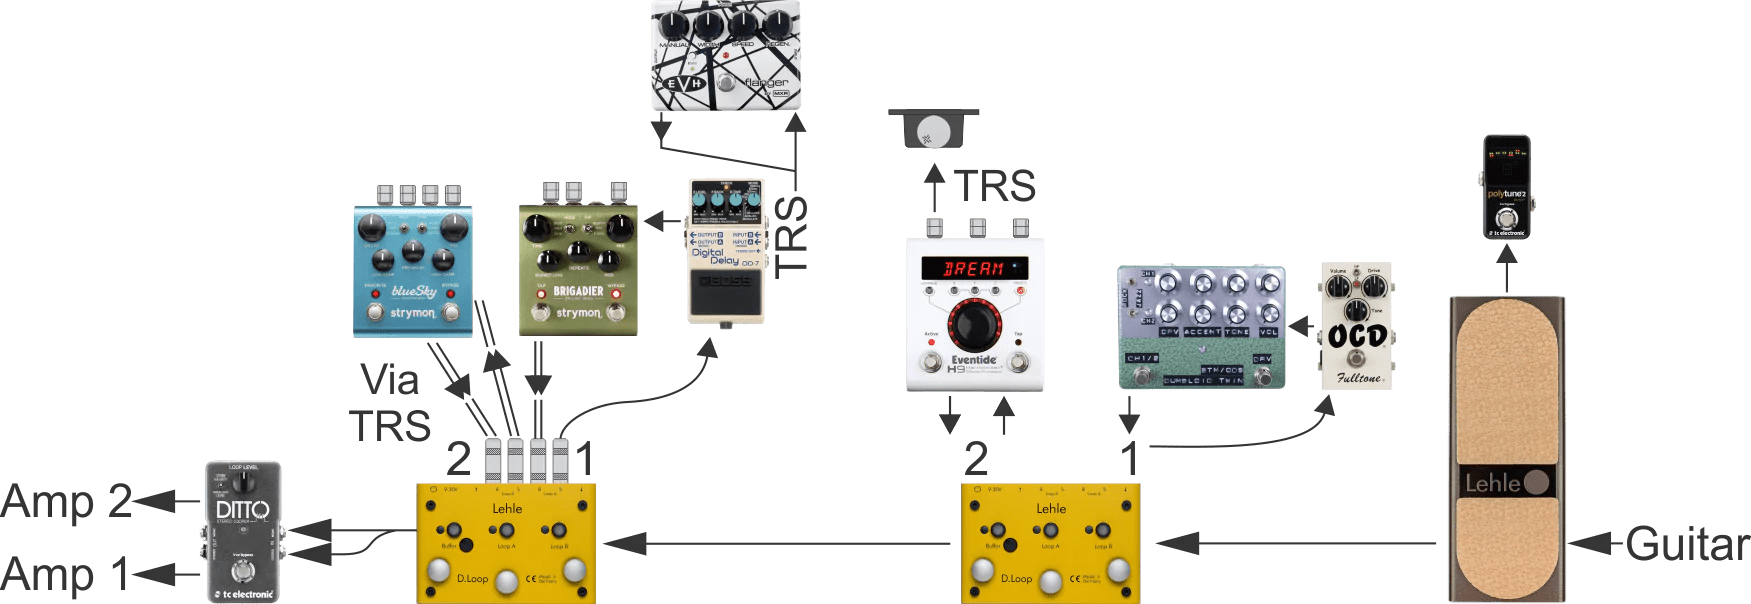 hight resolution of pedalboard wiring diagram box wiring diagram on off on toggle switch wiring diagram pedalboard power wiring diagram